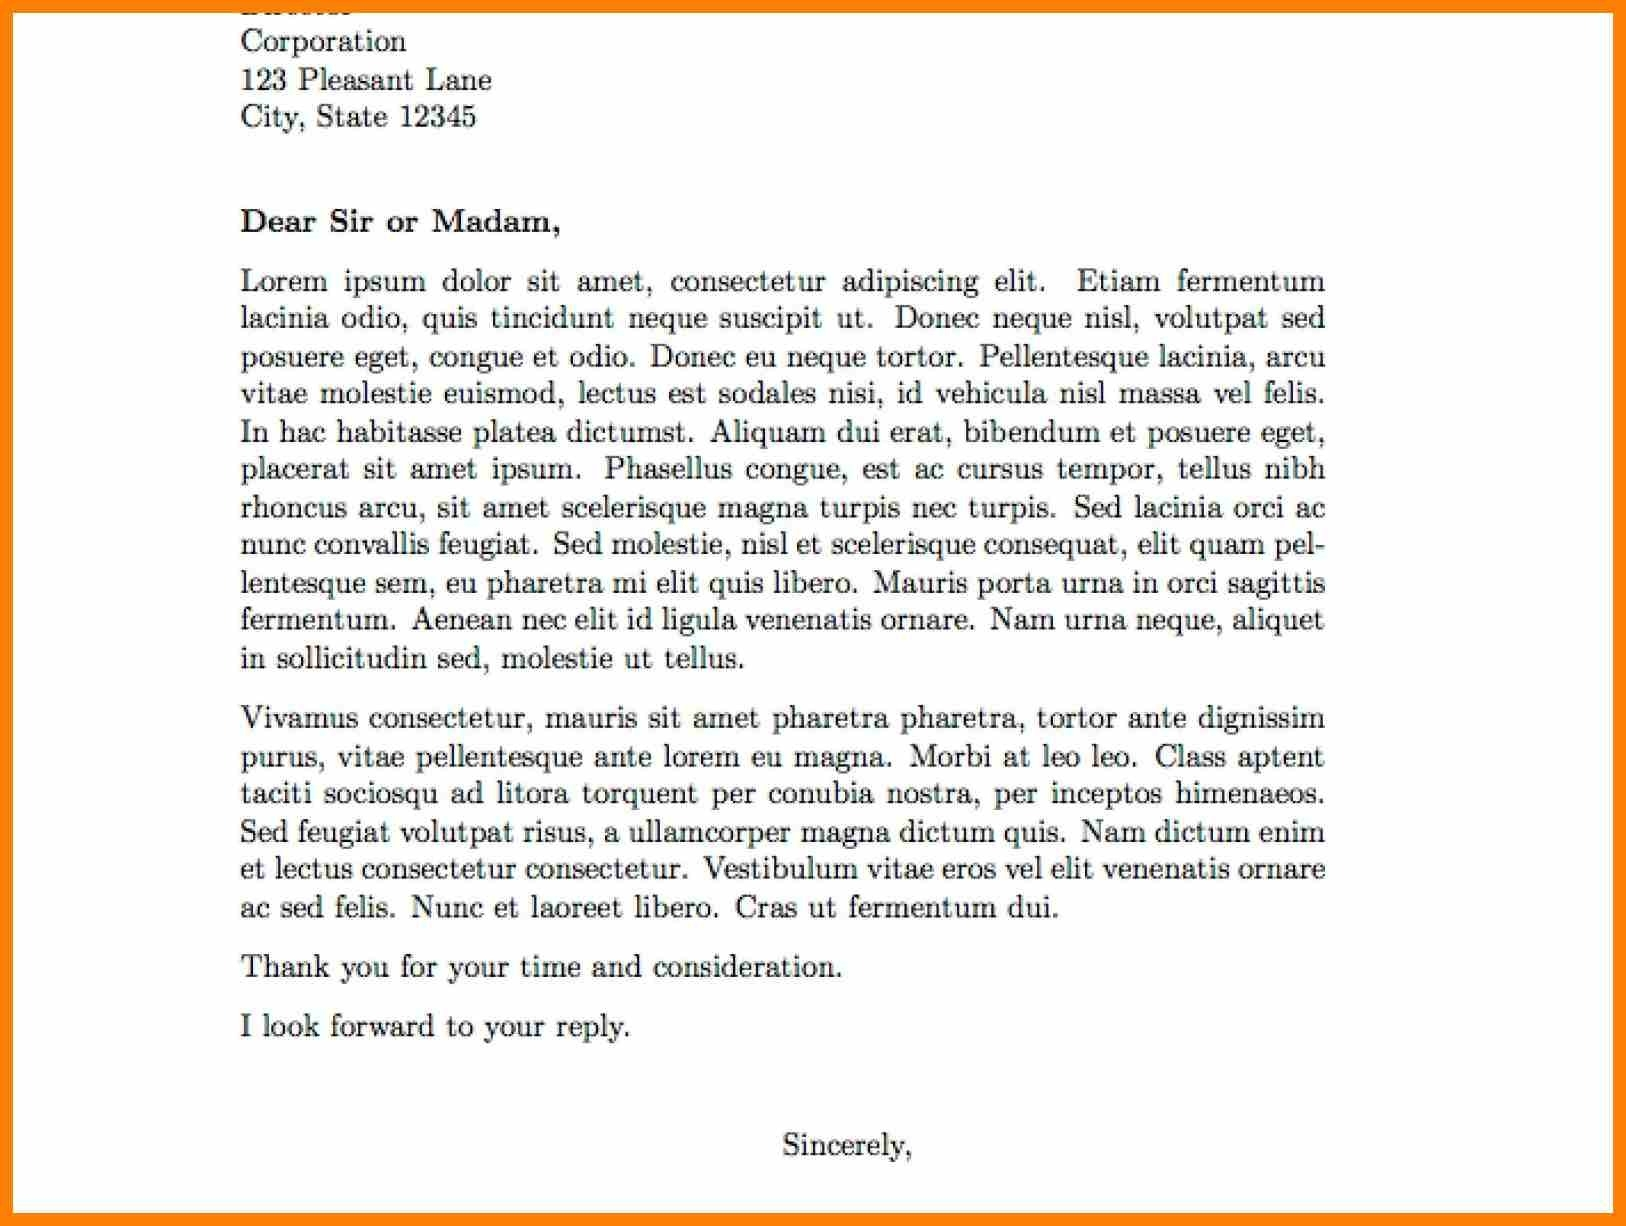 mission fundraising letter template example-Example mission trip support letter textpoems best mission trip fundraising letter template images sample support expocarfo 2-q